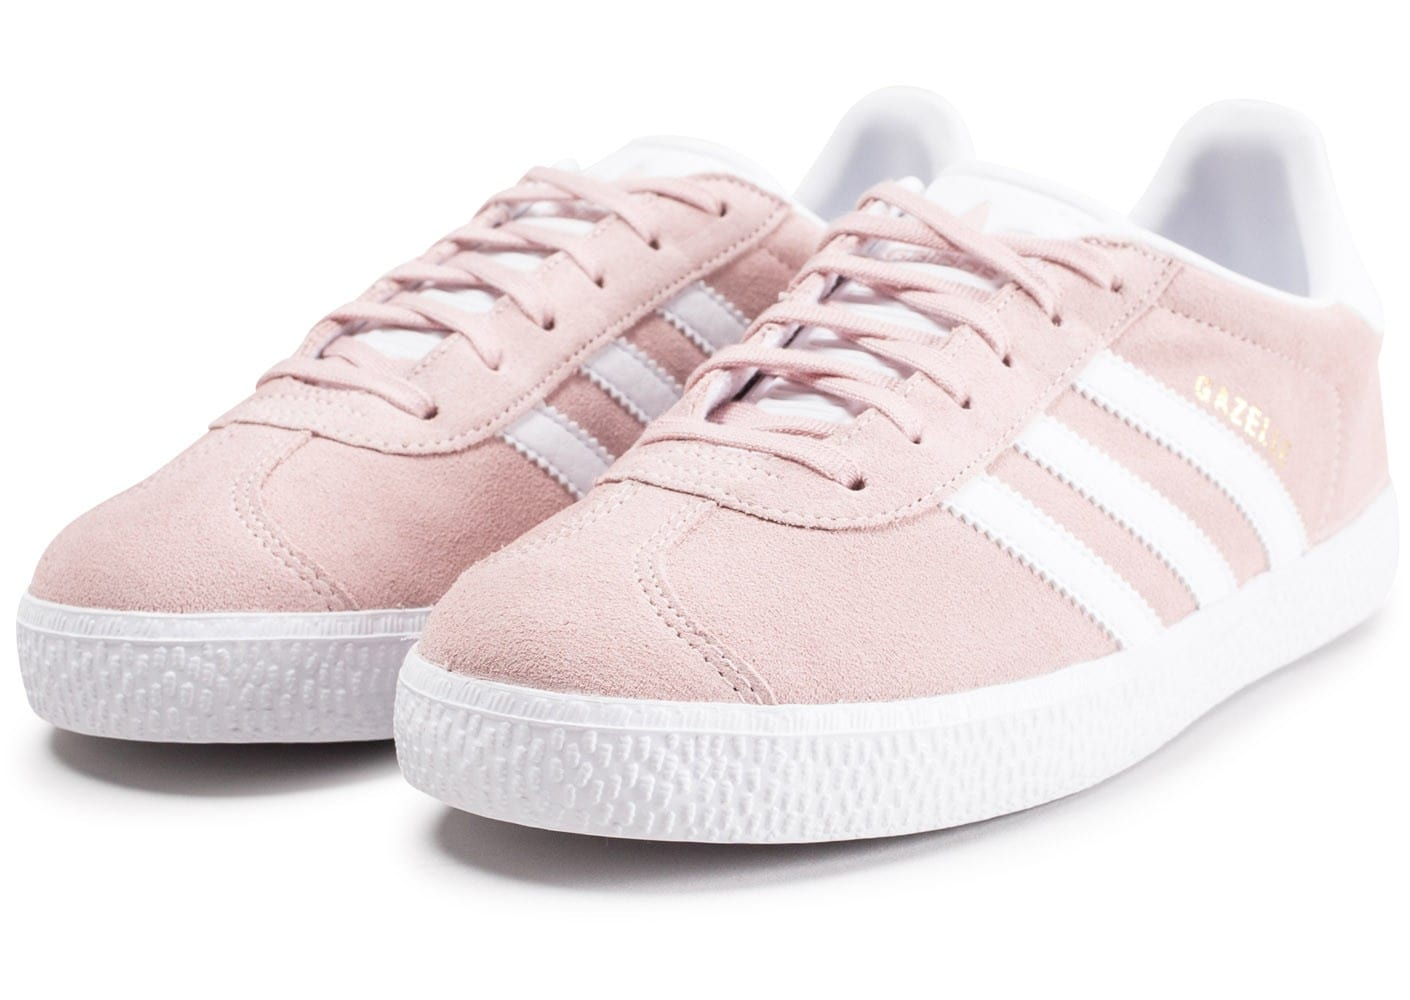 adidas gazelle junior rose et blanche chaussures adidas chausport. Black Bedroom Furniture Sets. Home Design Ideas